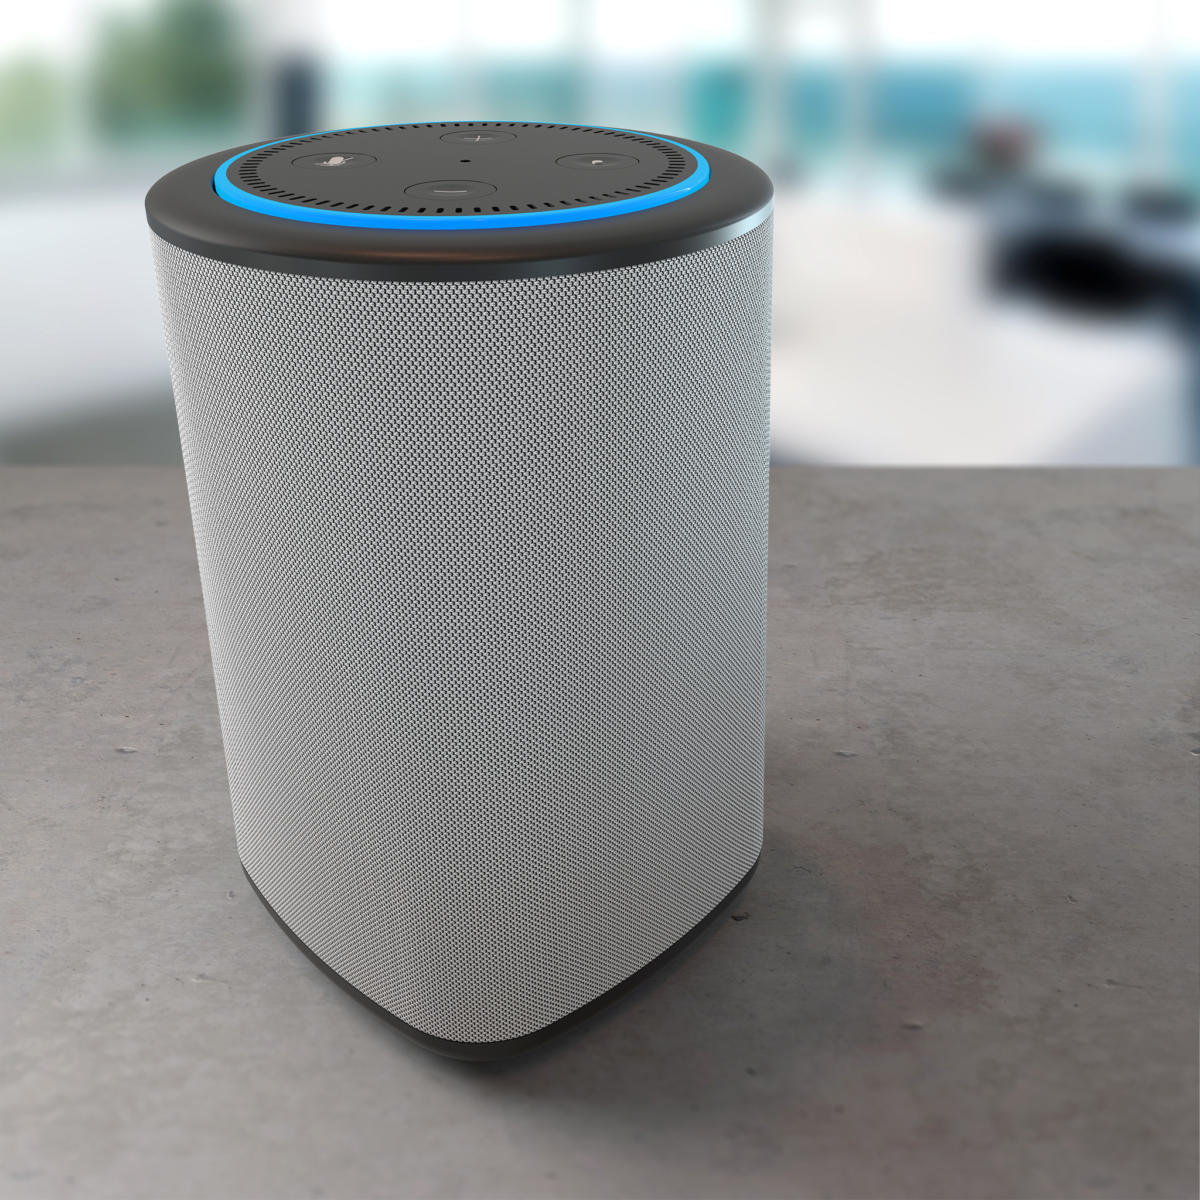 The Vaux: A portable battery-powered speaker for the Echo Dot